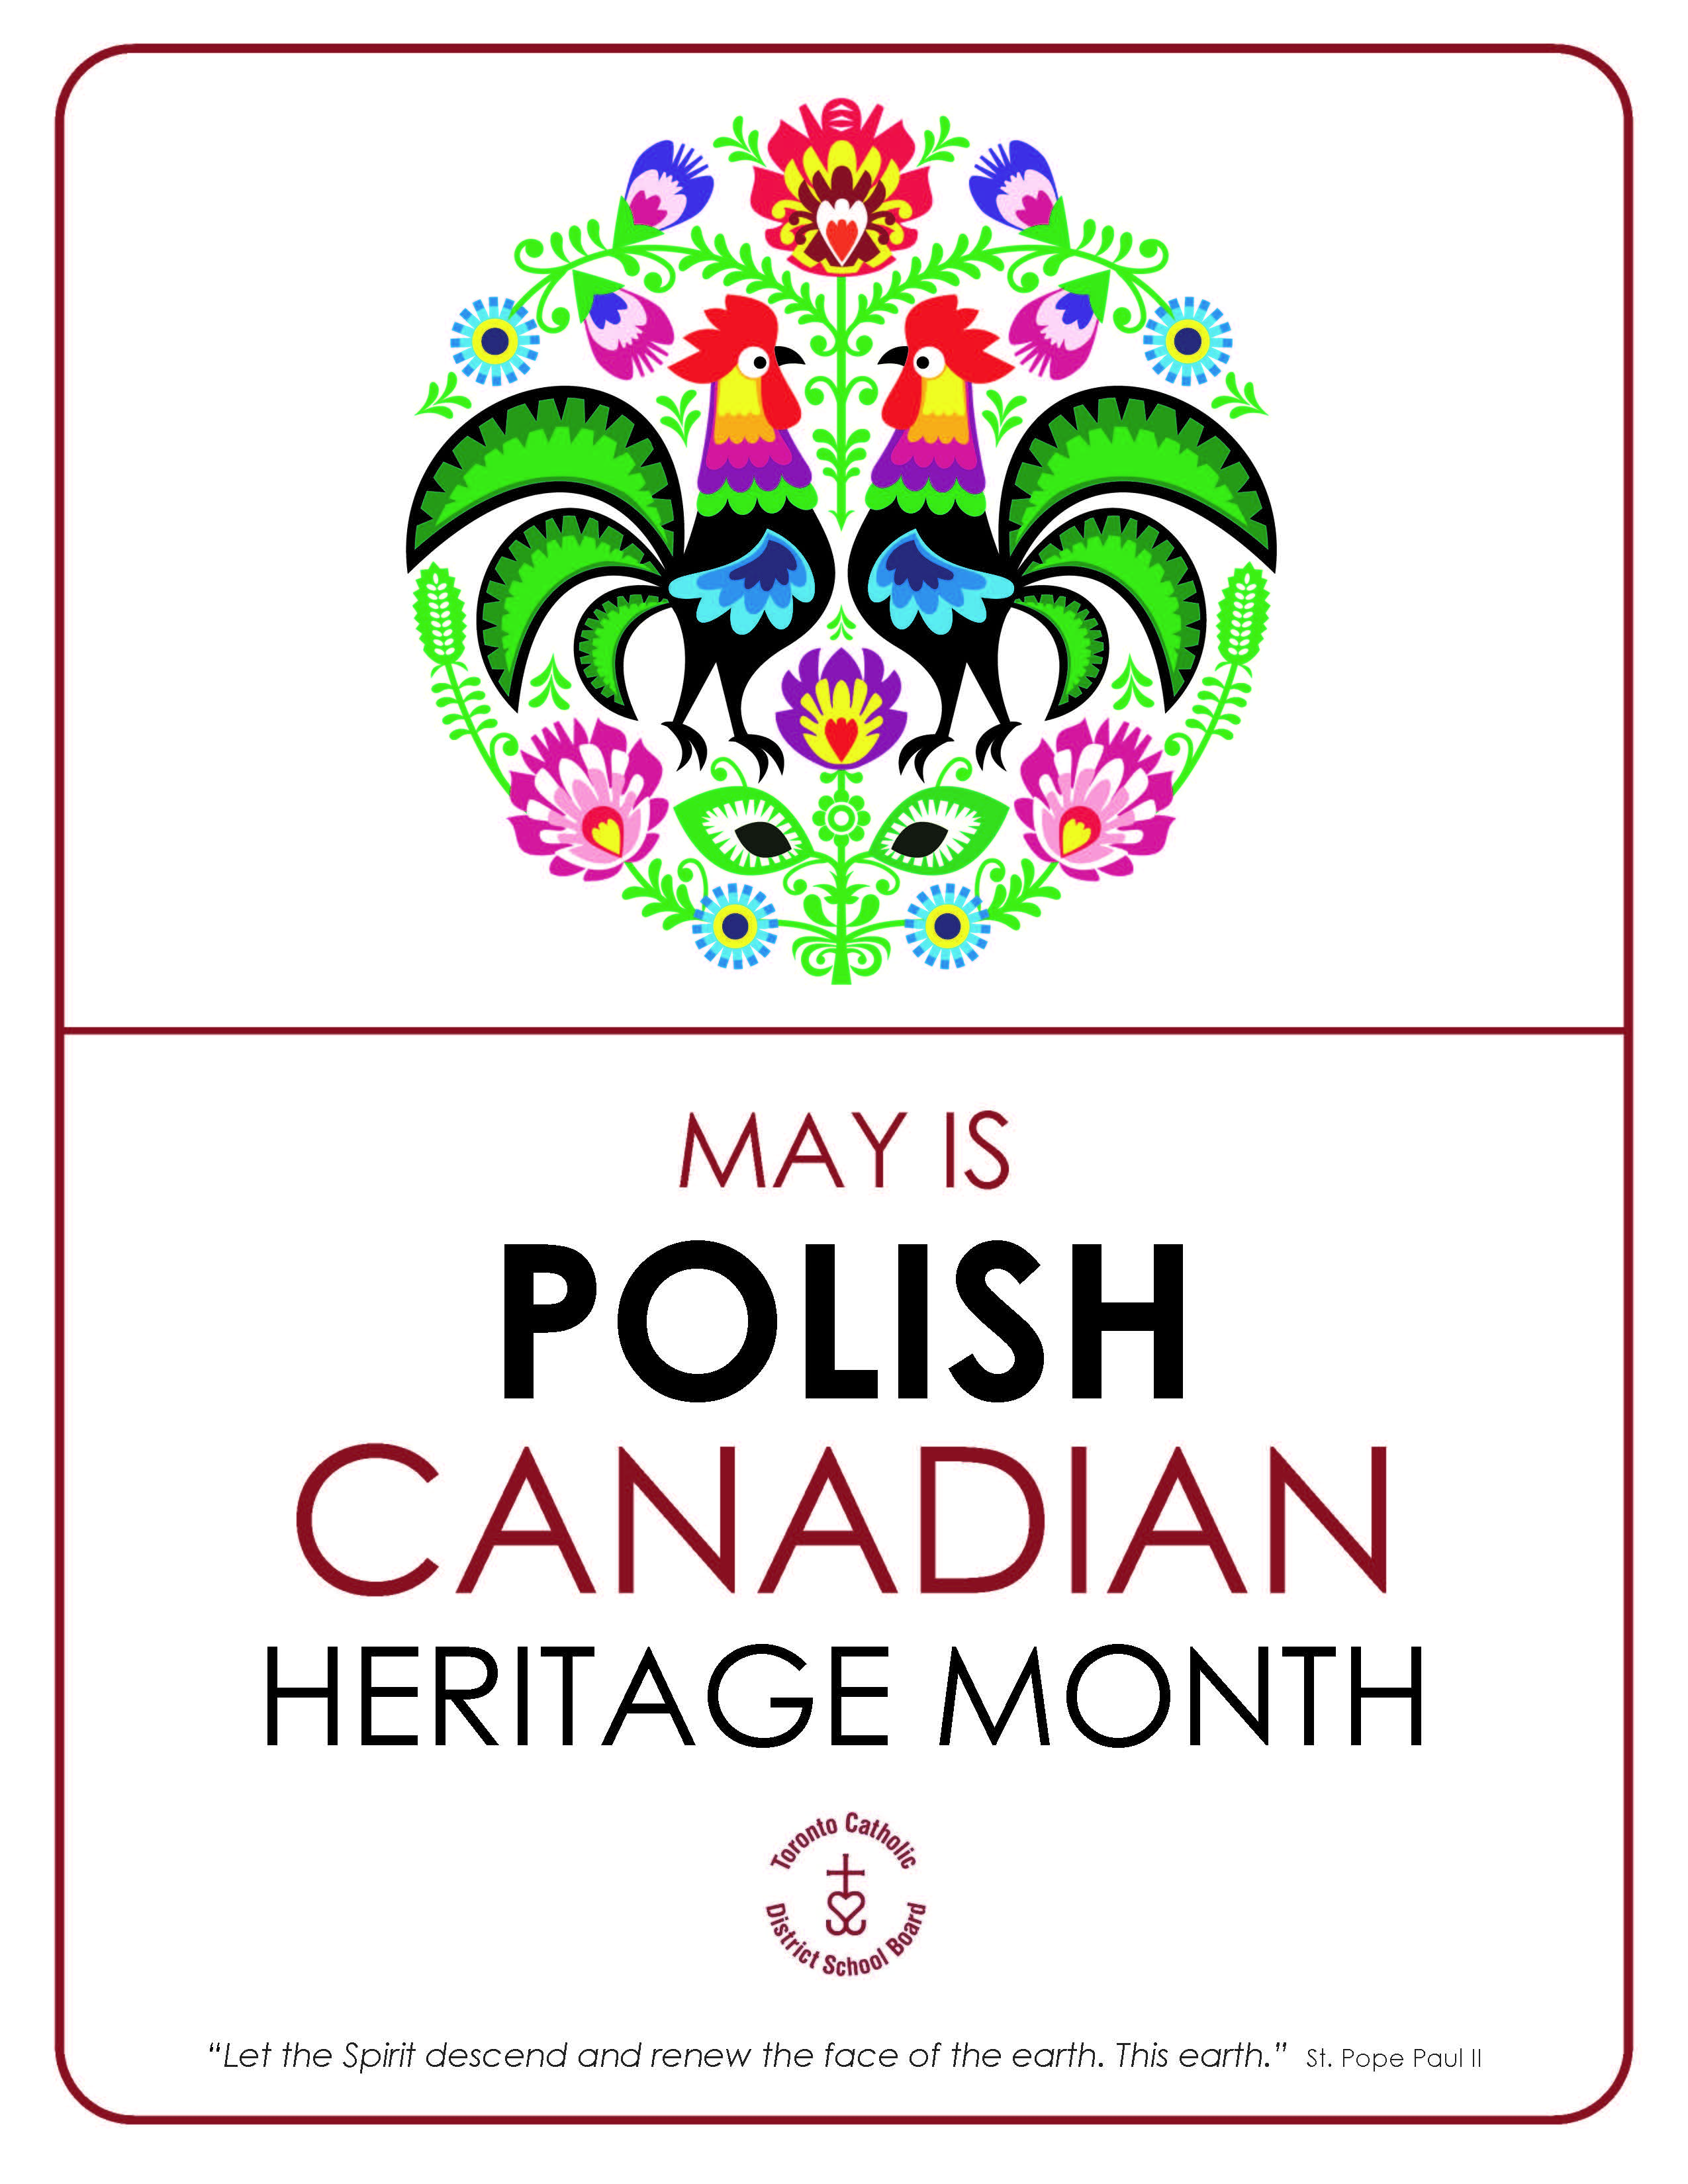 TCDSB Polish Heritage Month Poster. Poster content includes a colorful illustration of flowers and 2 roosters with the following texts: May is Polish Canadian Heritage Month - Let the Spirit descend and renew the face of the earth. This earth - St. Pope Paul II